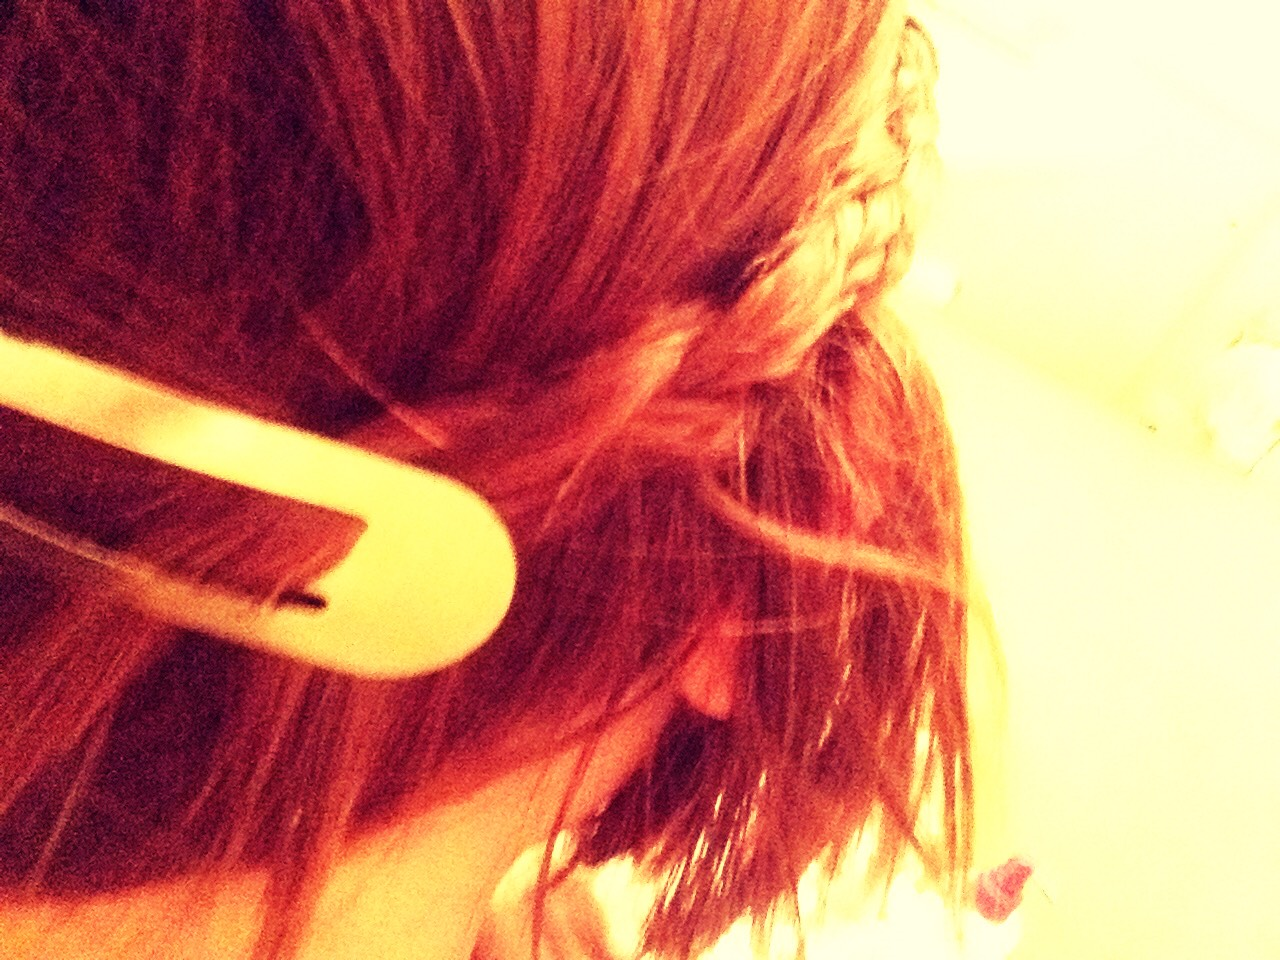 With a clip or bobby pin attach the braid to the back of your head